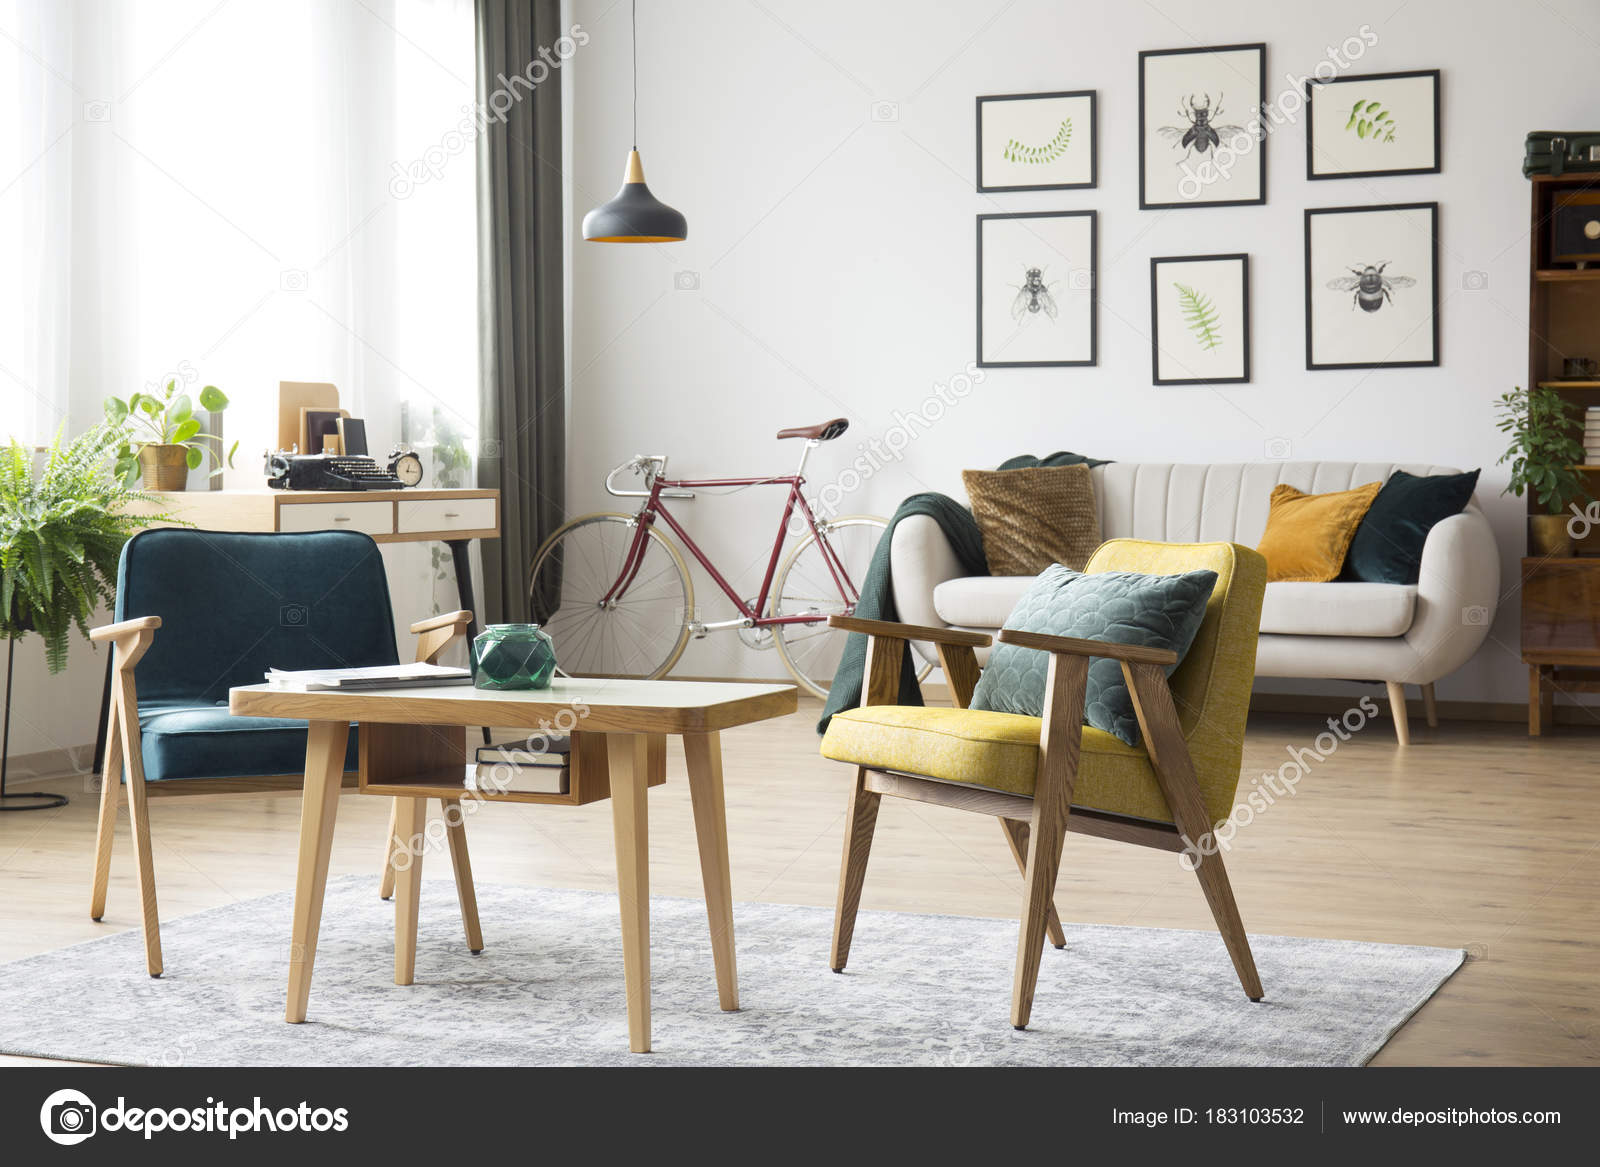 Retro Fauteuils in woonkamer — Stockfoto © photographee.eu #183103532